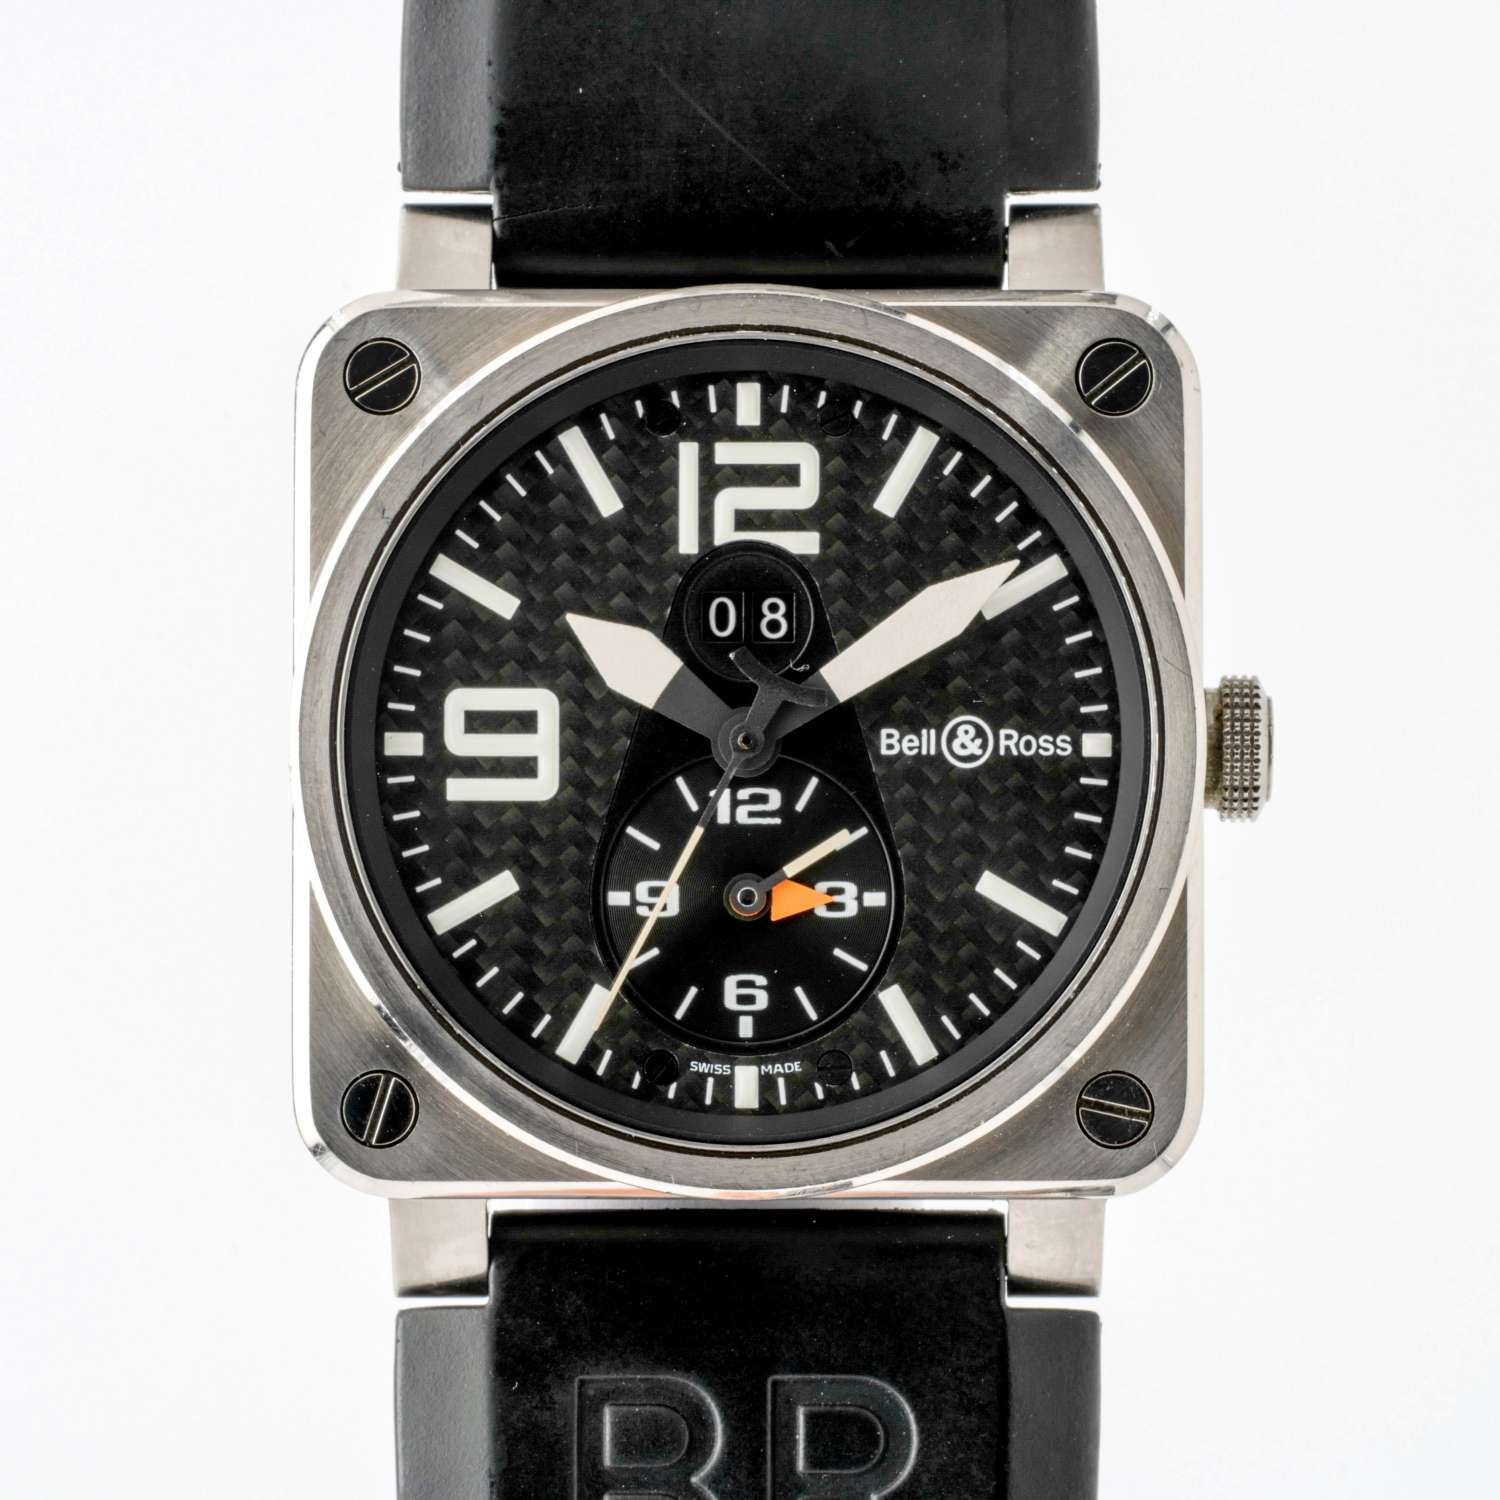 Bell & Ross GMT Titanium Automatic, Boxed 8172